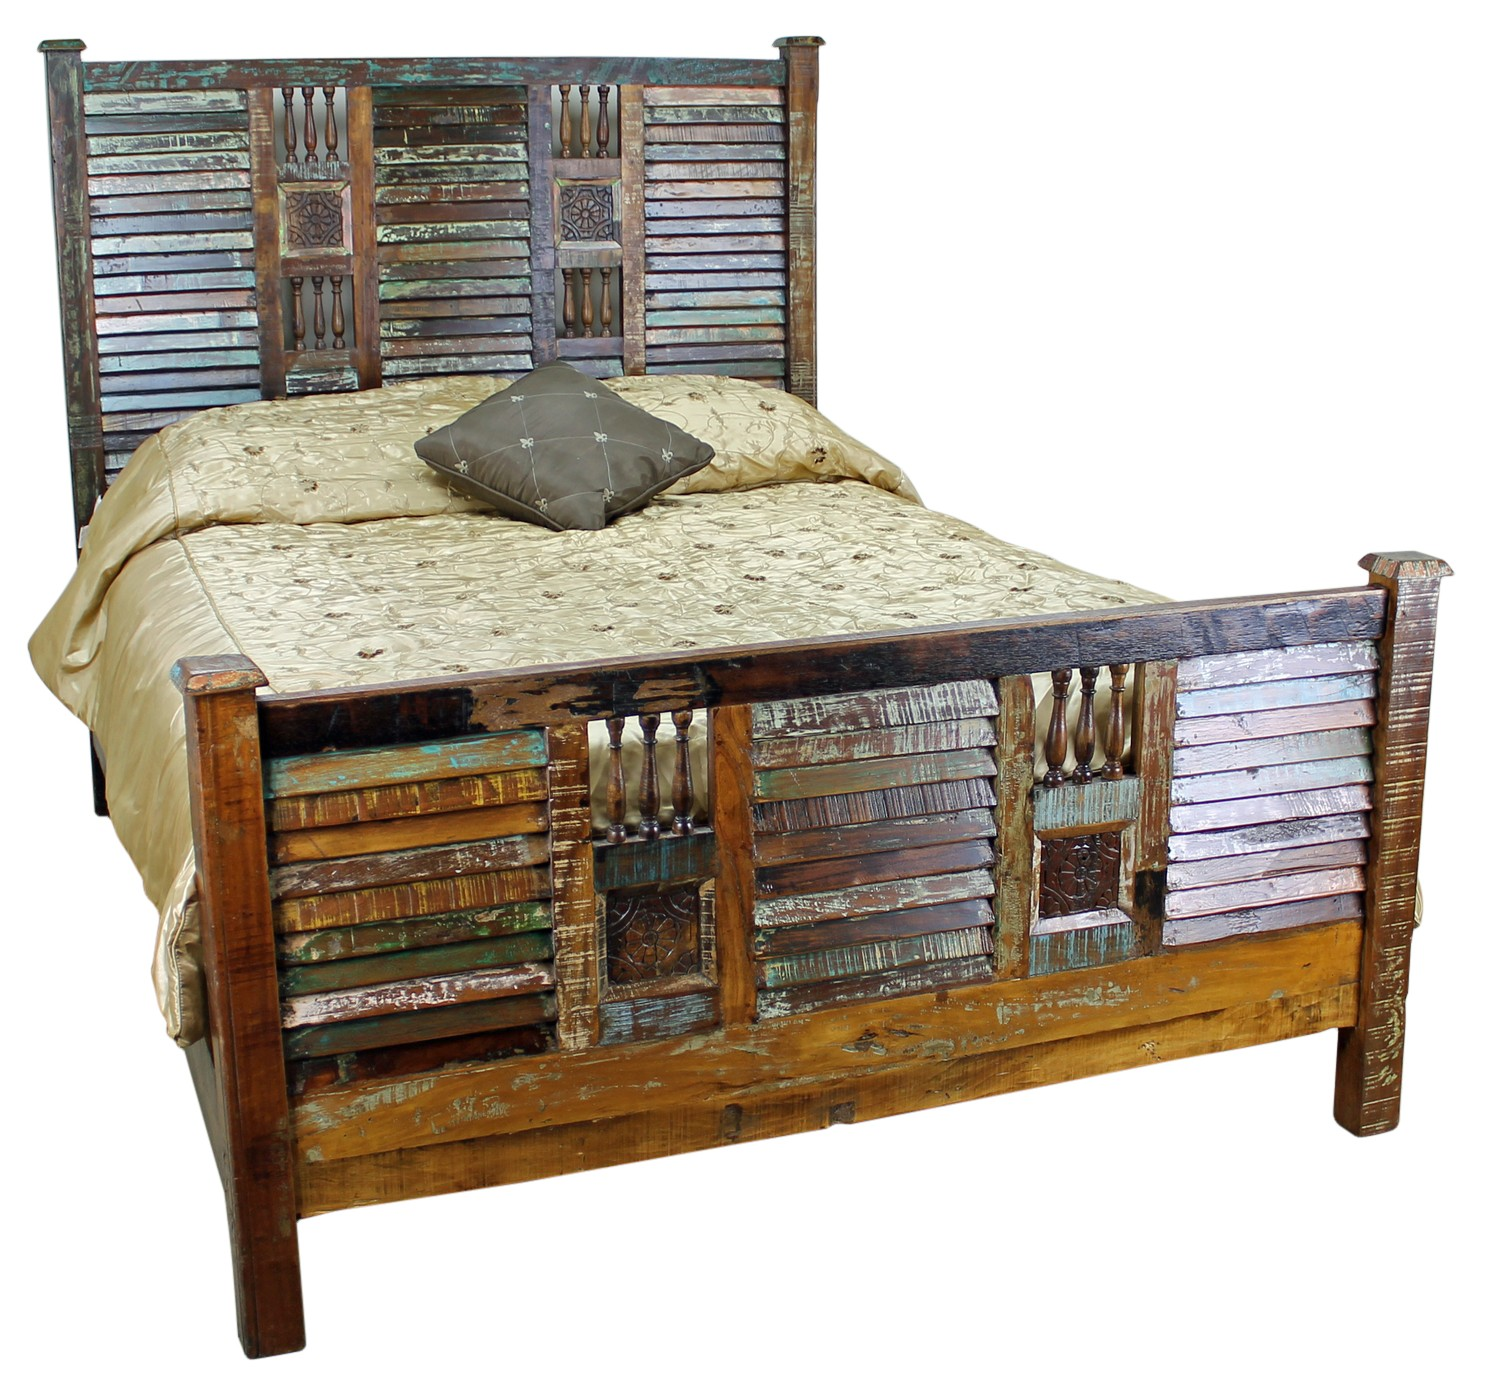 Wooden Beds Custom Bed Manufacturers In India Antique Wooden Beds